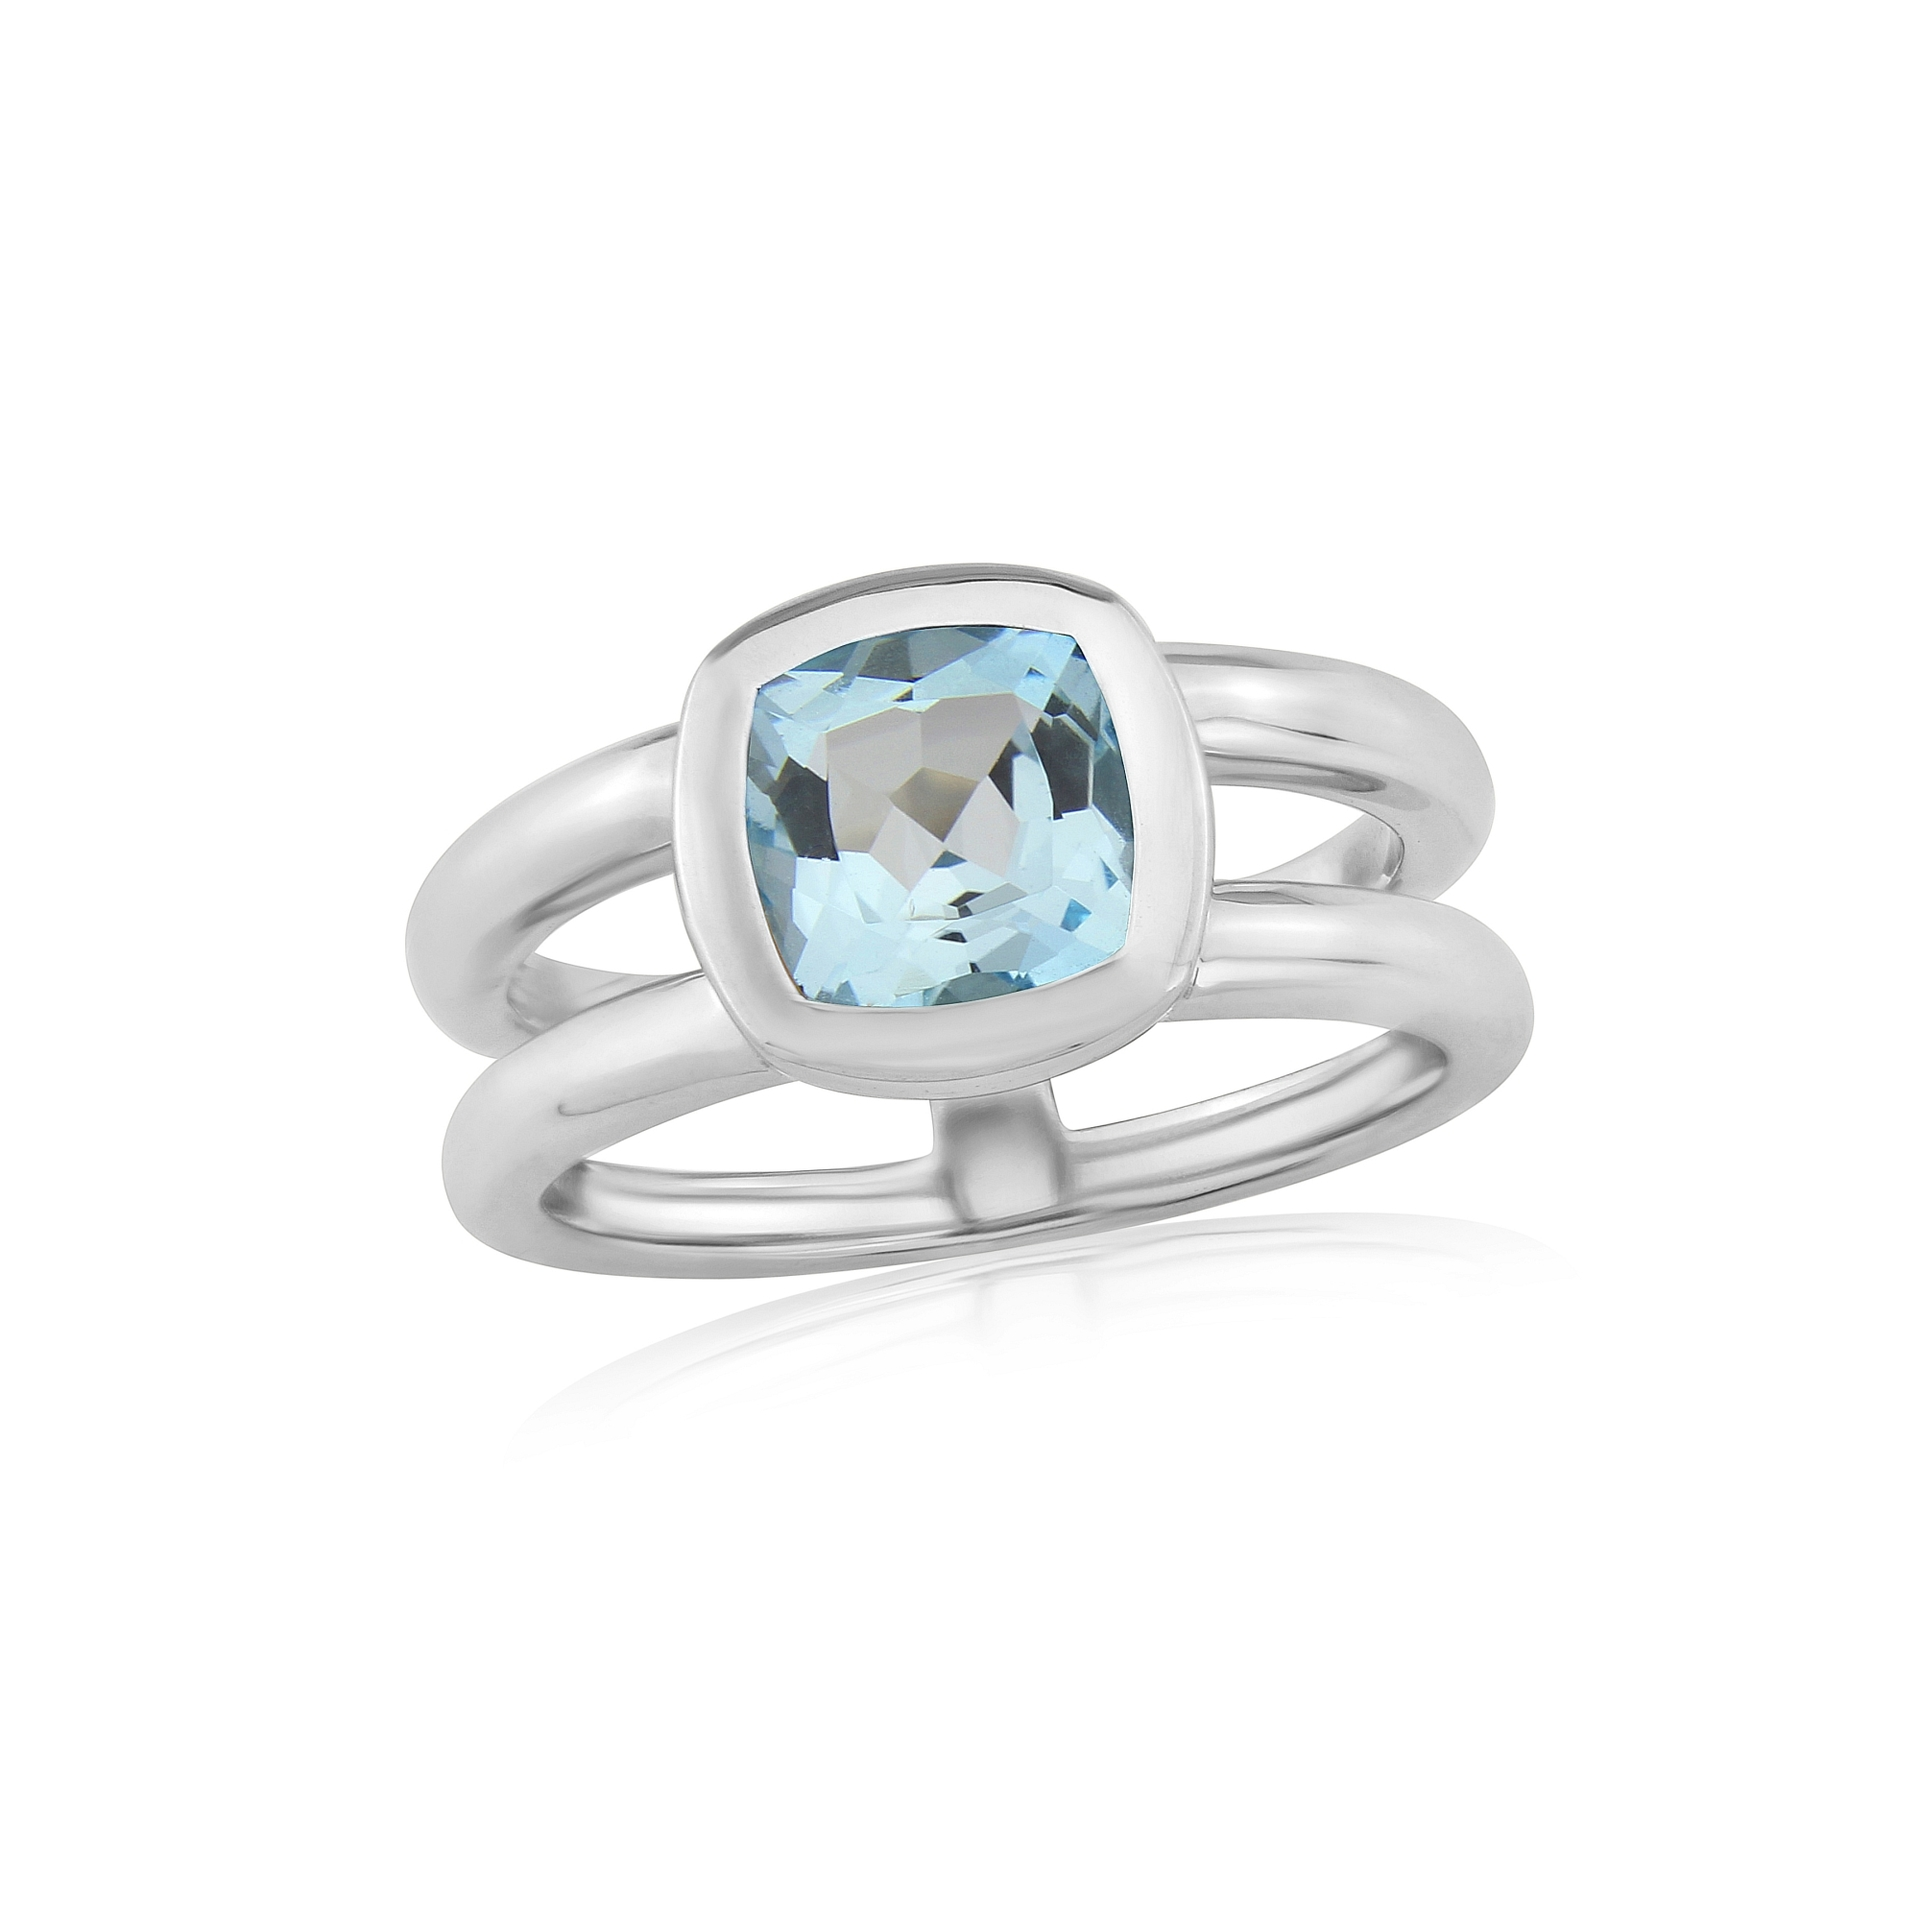 Twin collection Cushion Cut Blue Topaz and Silver Ring